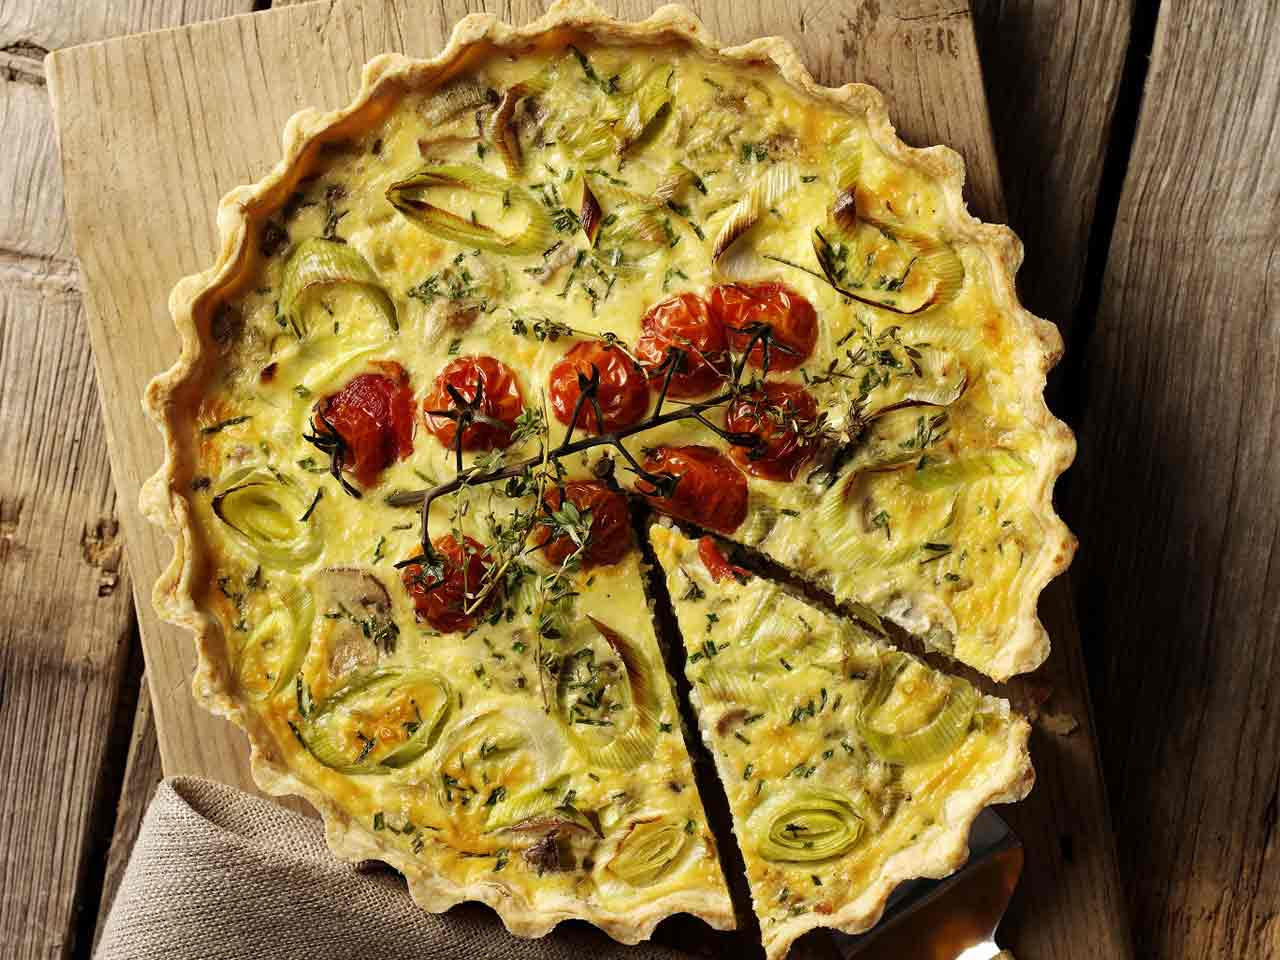 Mushroom and vegetable quiche